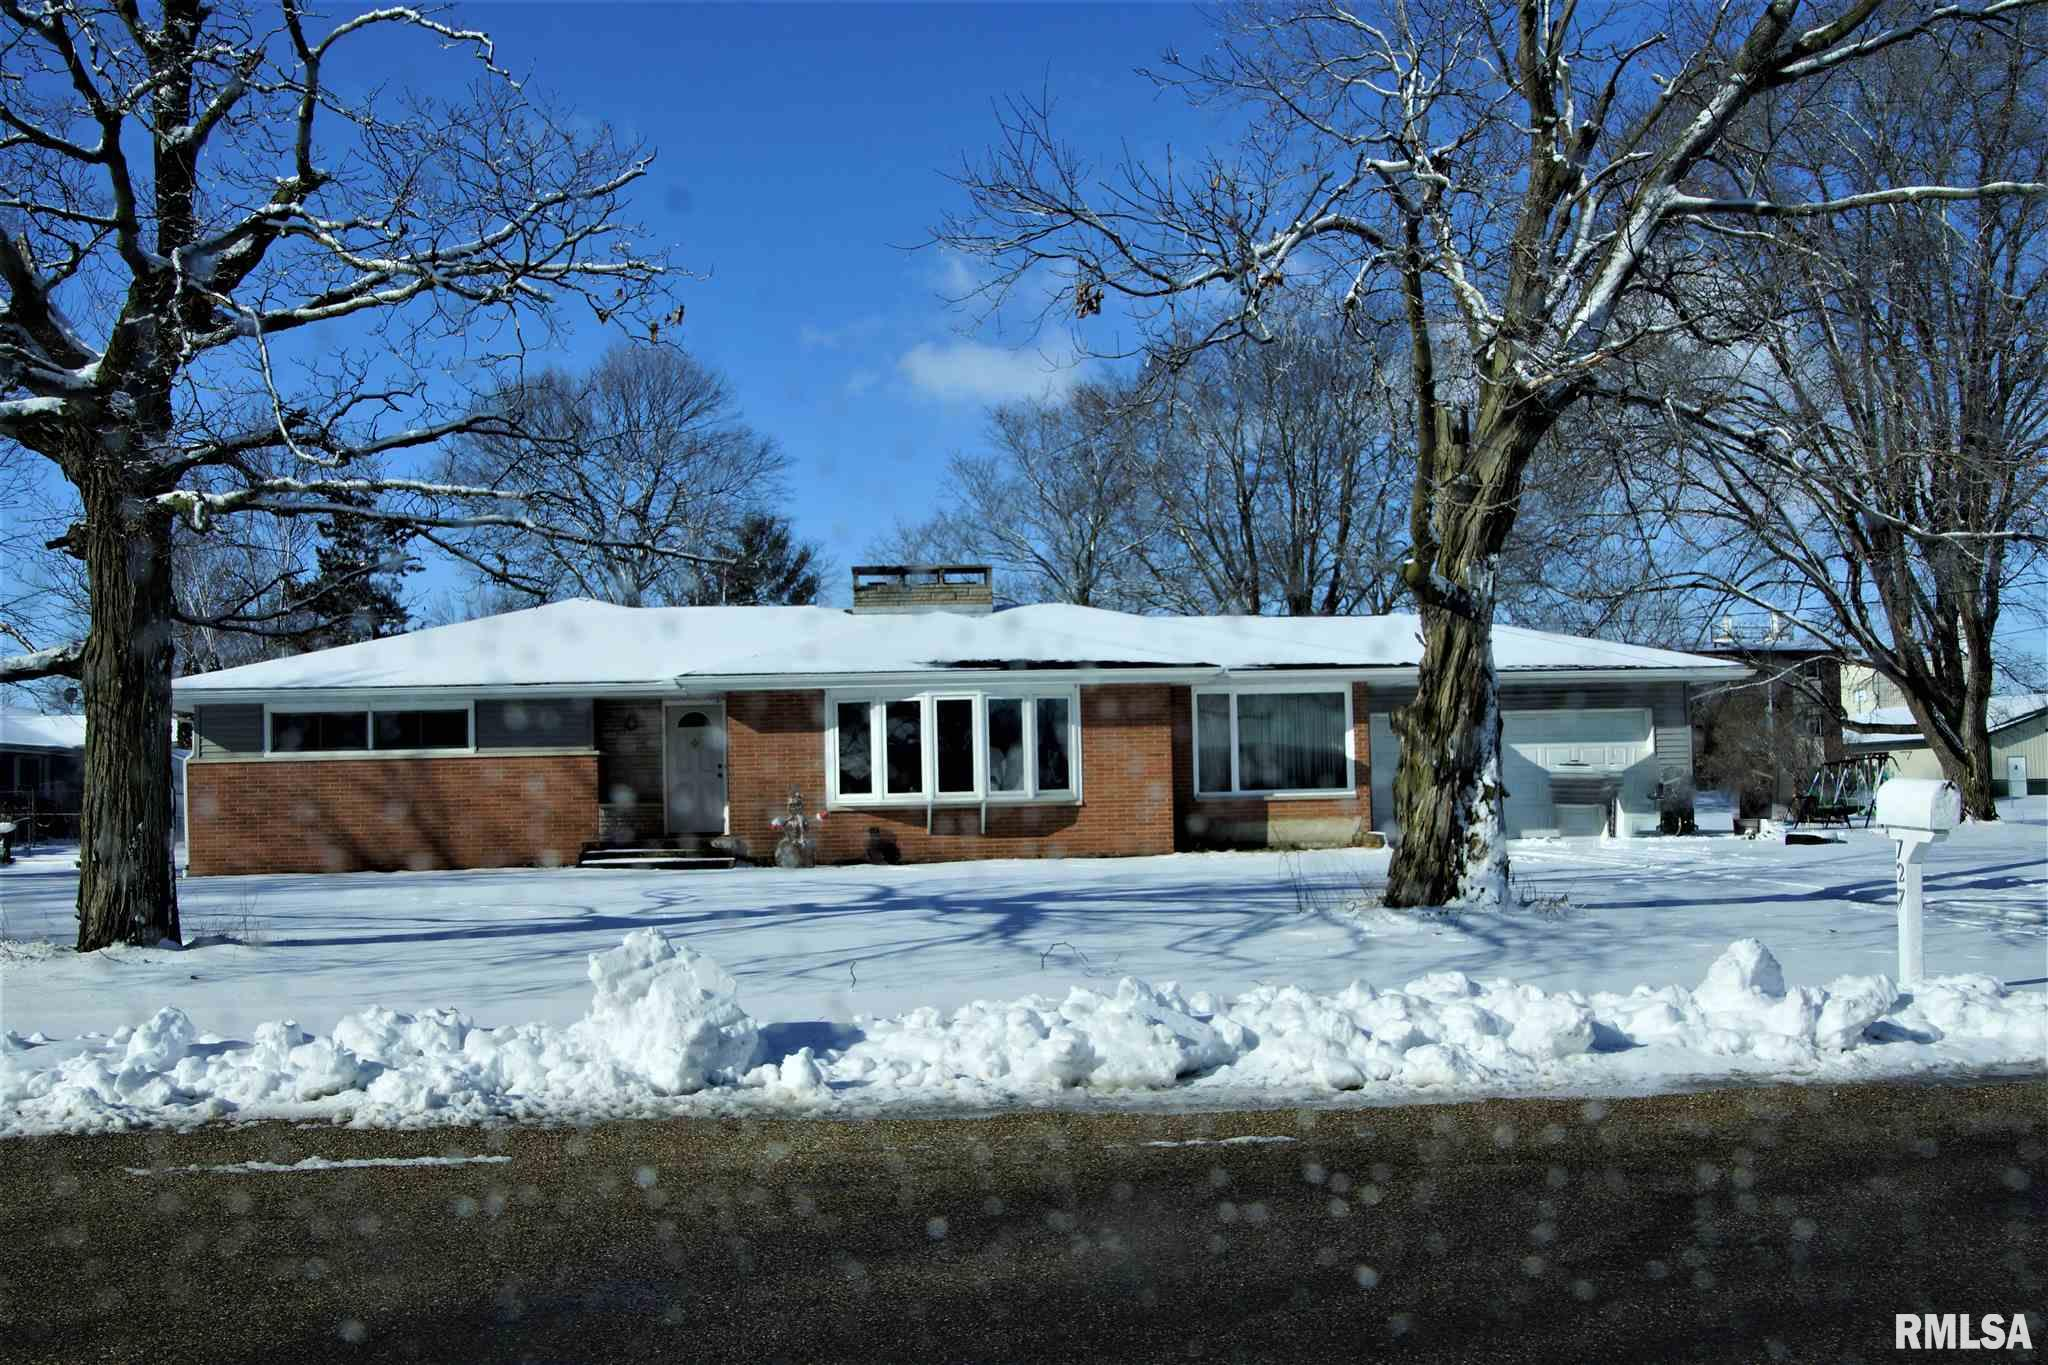 727 N TOWN Property Photo - Princeville, IL real estate listing